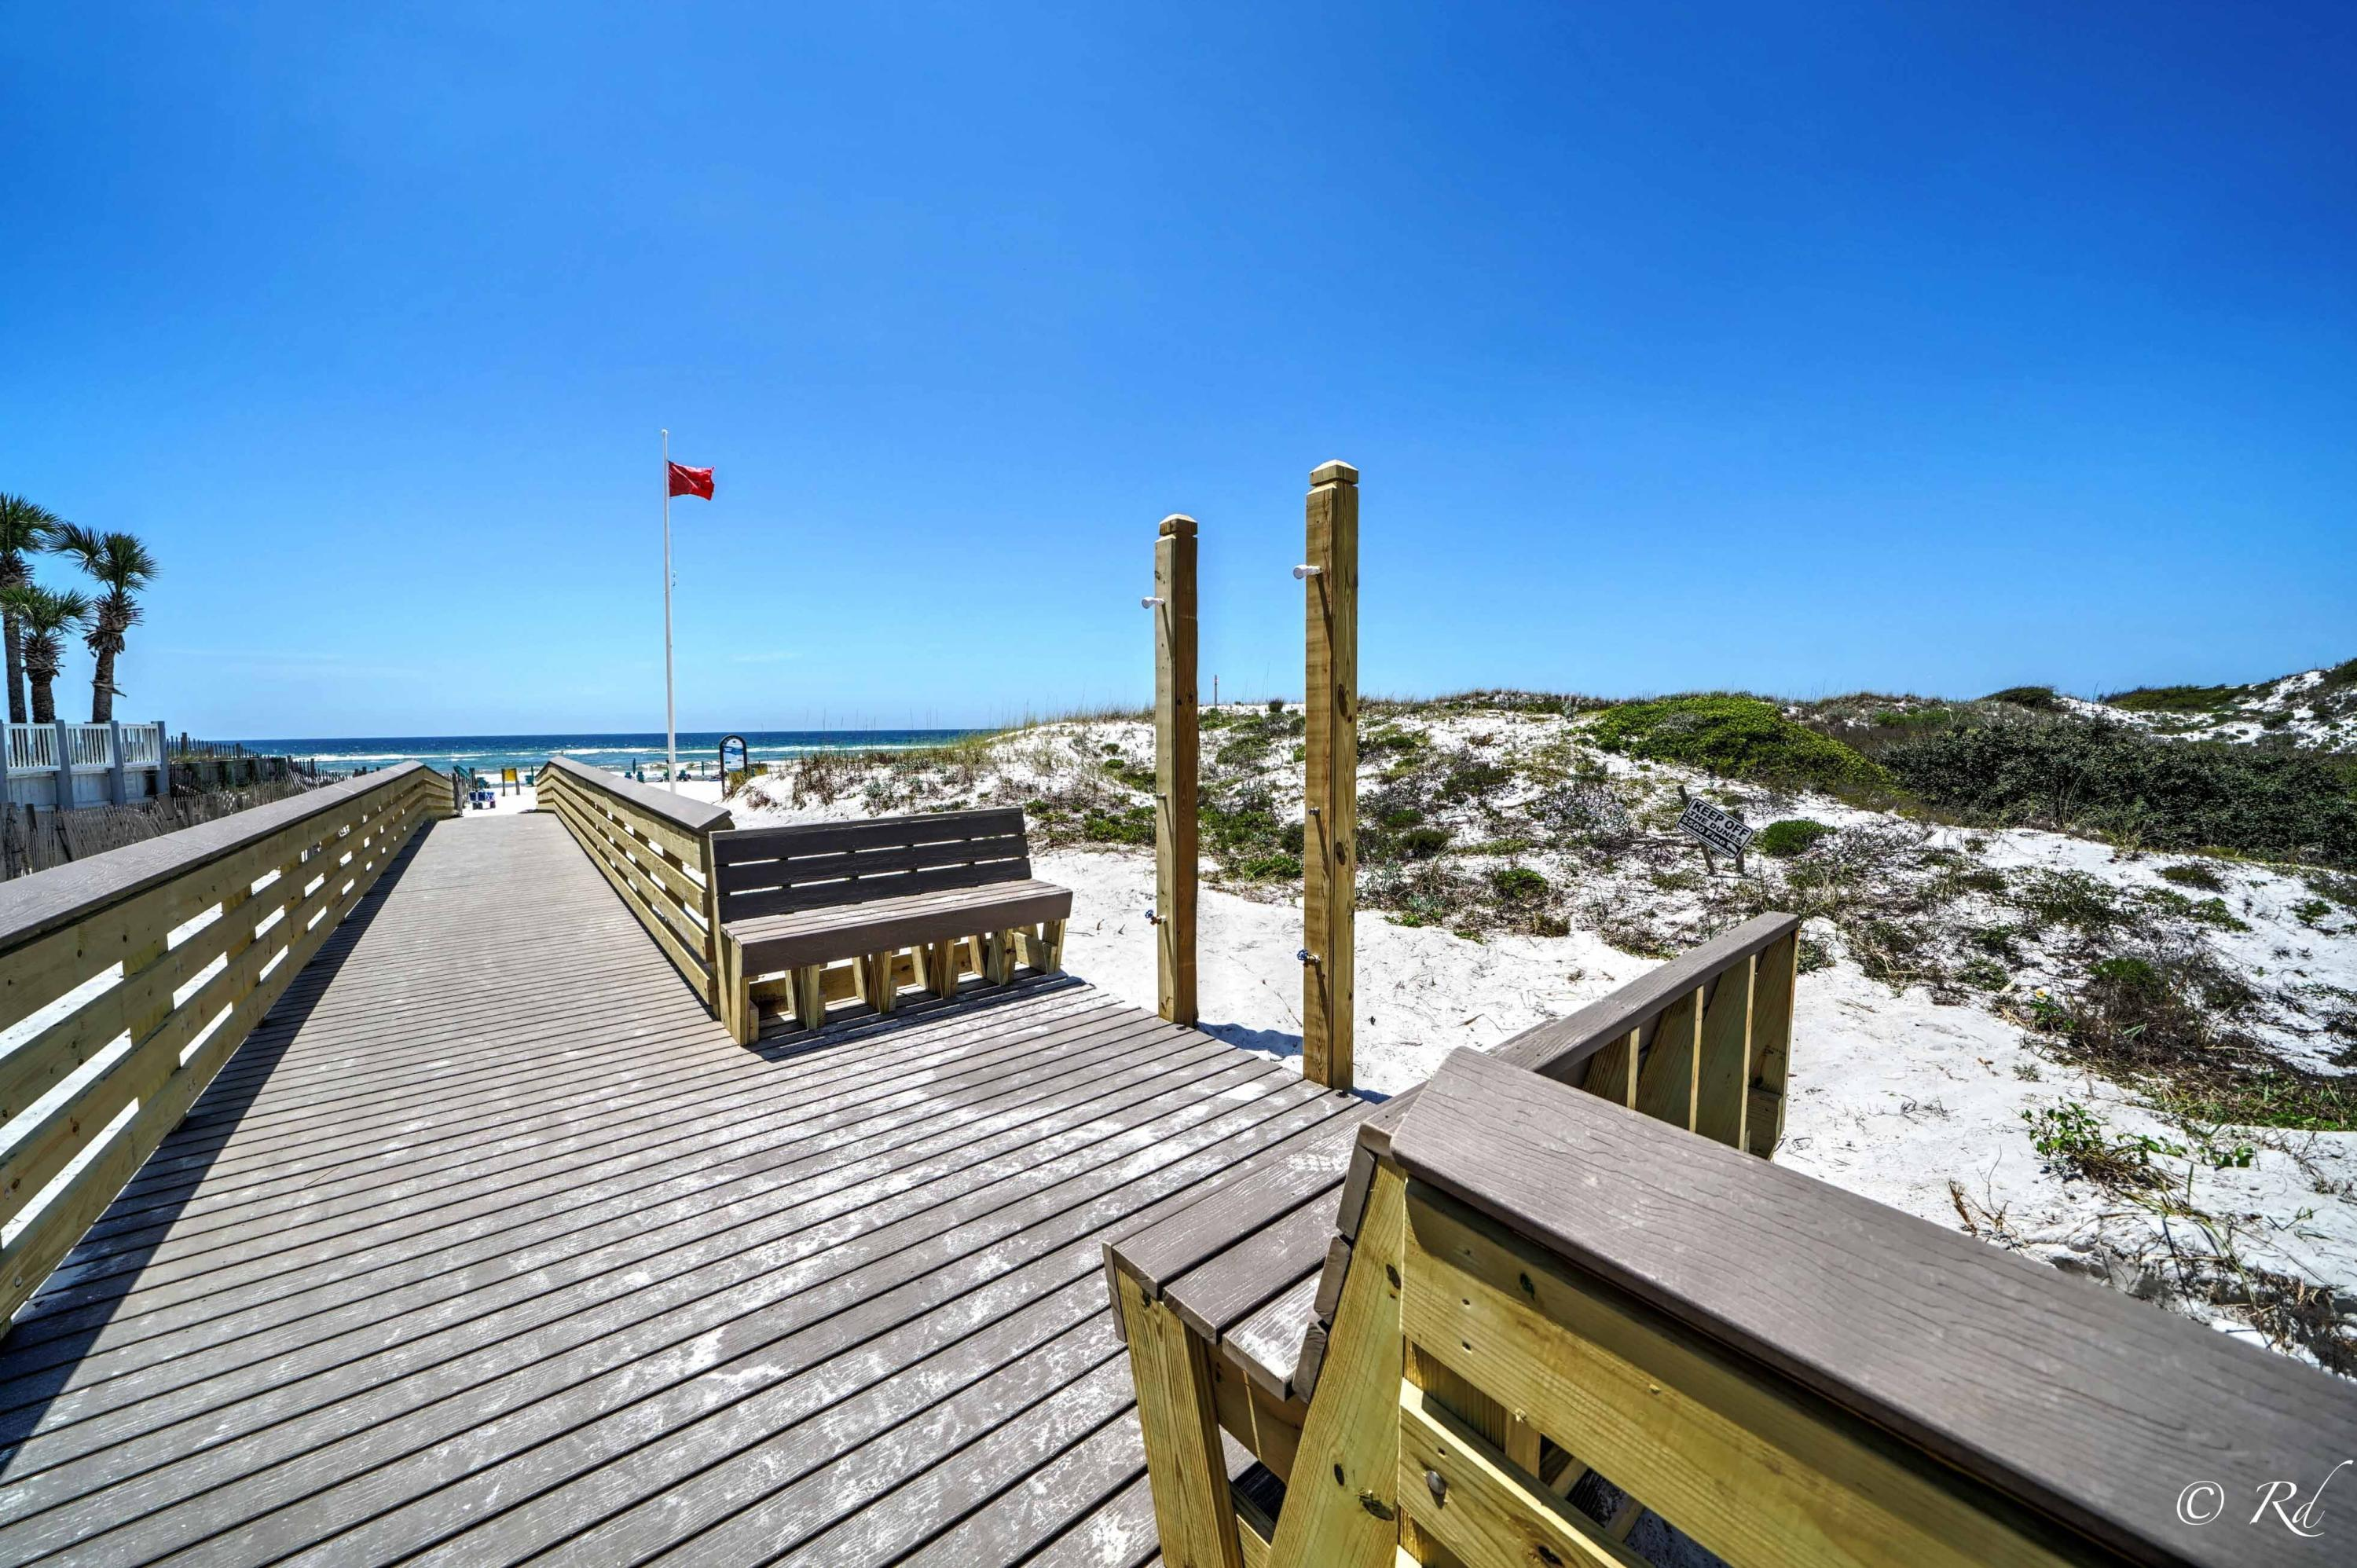 Live off  Scenic Hwy 30a in the heart of Seagrove centrally located between Rosemary Beach and Seacrest Beach.  Yes!!! For under 380k... and just steps away to a public beach access.This beautiful Beachside condo sits quietly beside a rare coastal Dune Lake with bedroom views and lake side grilling with a pool to cool off in just steps away.   Not to mention a public beach access in less than a 5 minute walk!  This home away from home has been remodeled with the beach appeal of every beach lovers taste all for your  enjoyment.  Modern kitchen with quartz counter tops, back splash and stainless steel appliances.  Currently on rental program for an immediate return on your investment.  Sleeps 9 Don't miss out on this priced to sell Beachside condo.